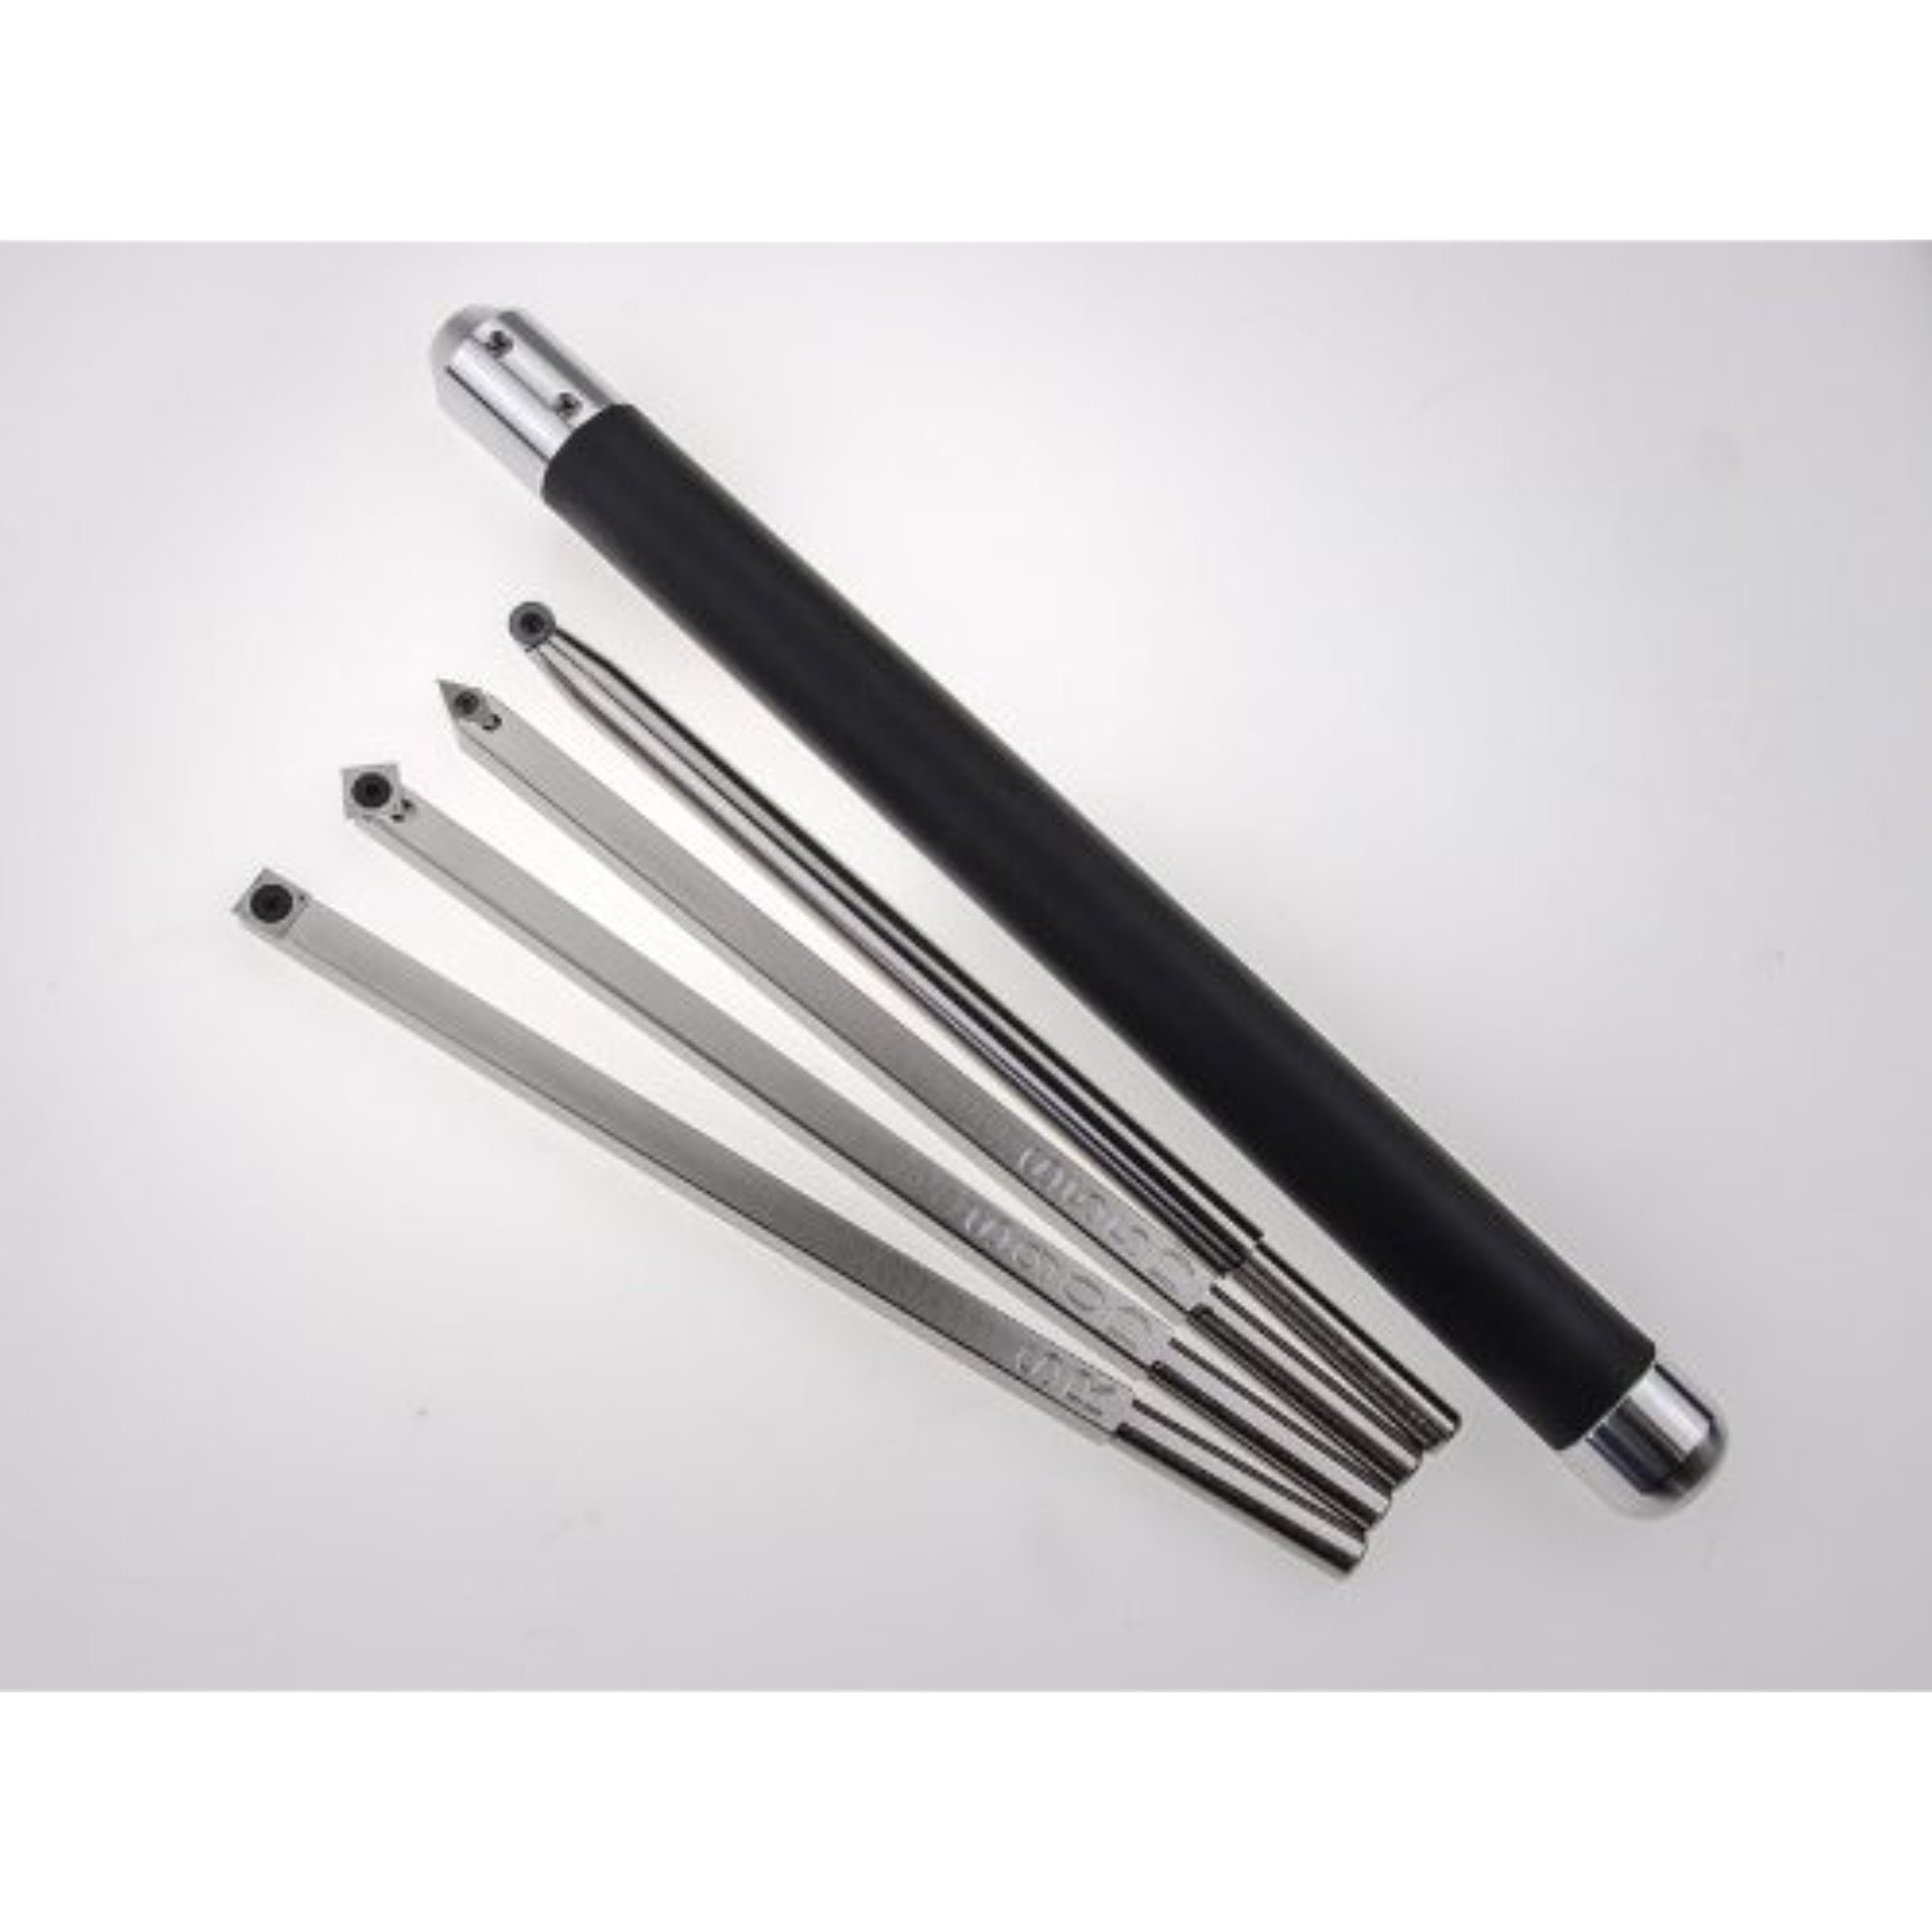 Package of 4 Simple Carbide Simple Wood Turning Tools with Interchangeable Lathe Tool Handle